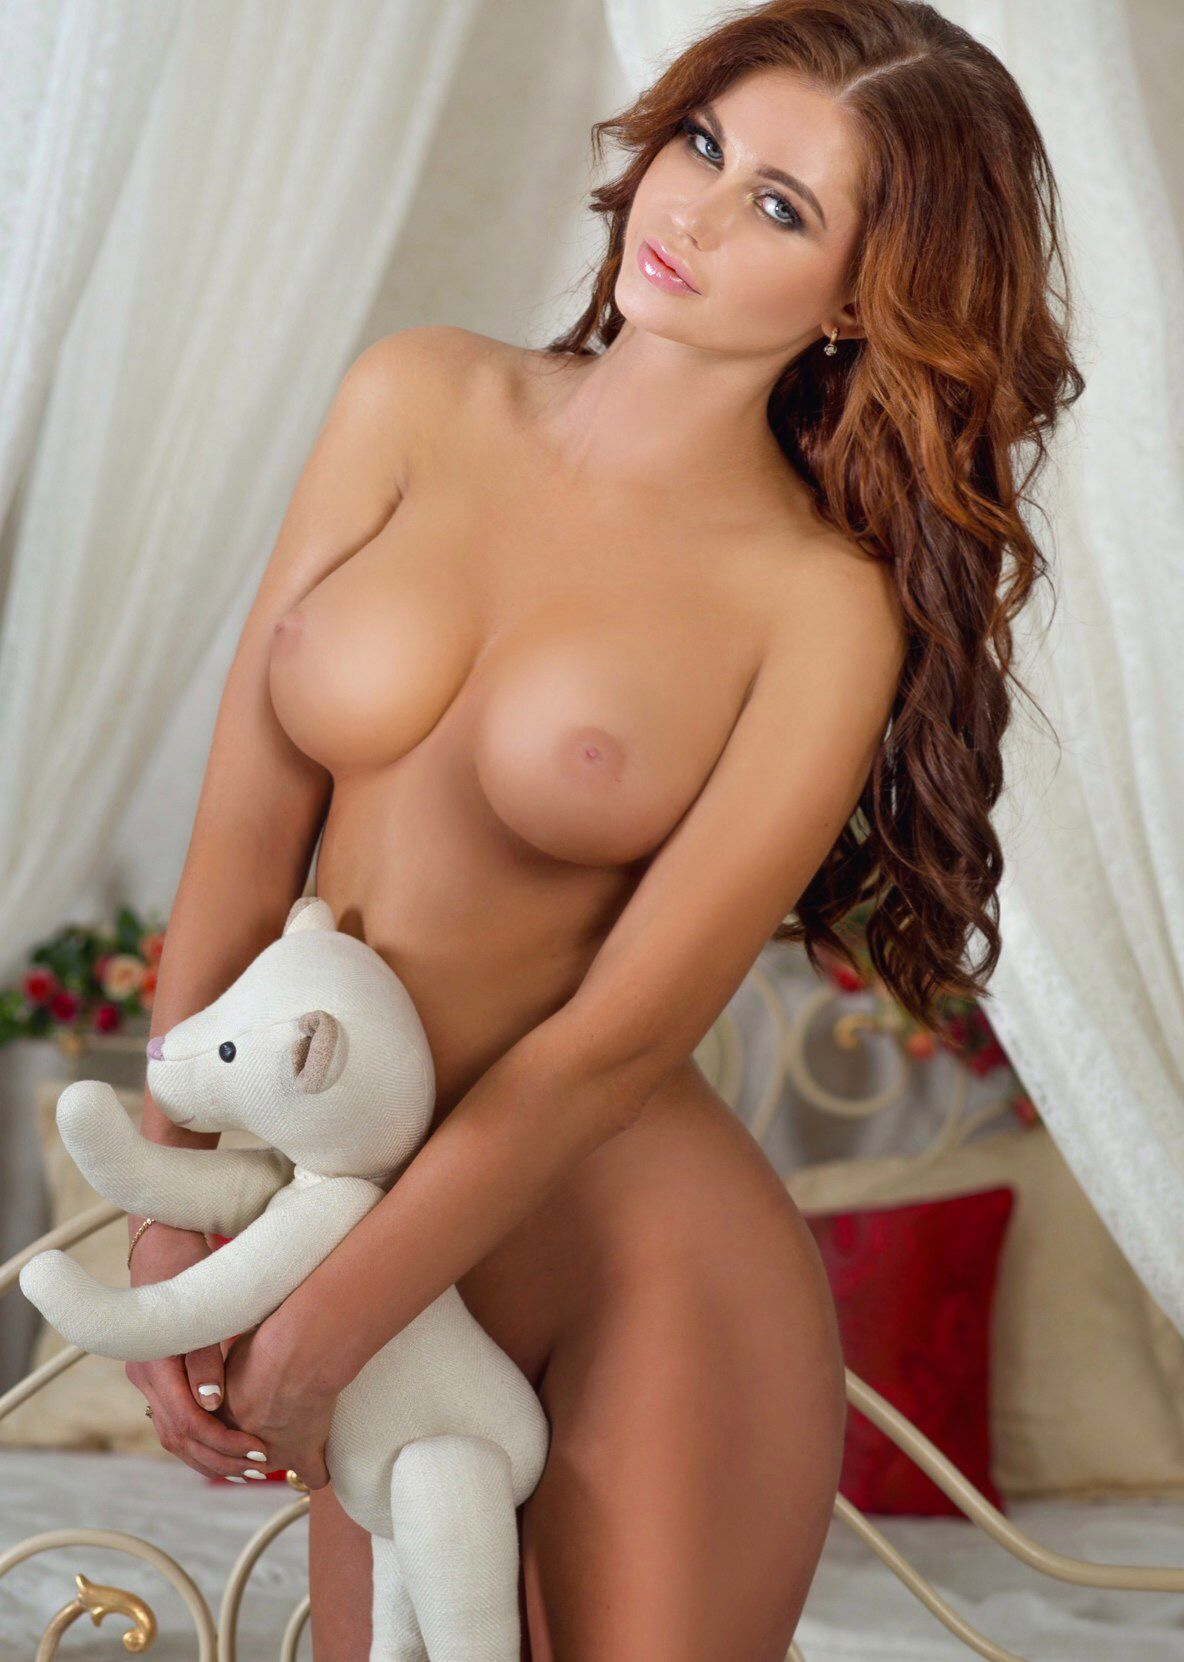 Nude russian female escorts pic 711